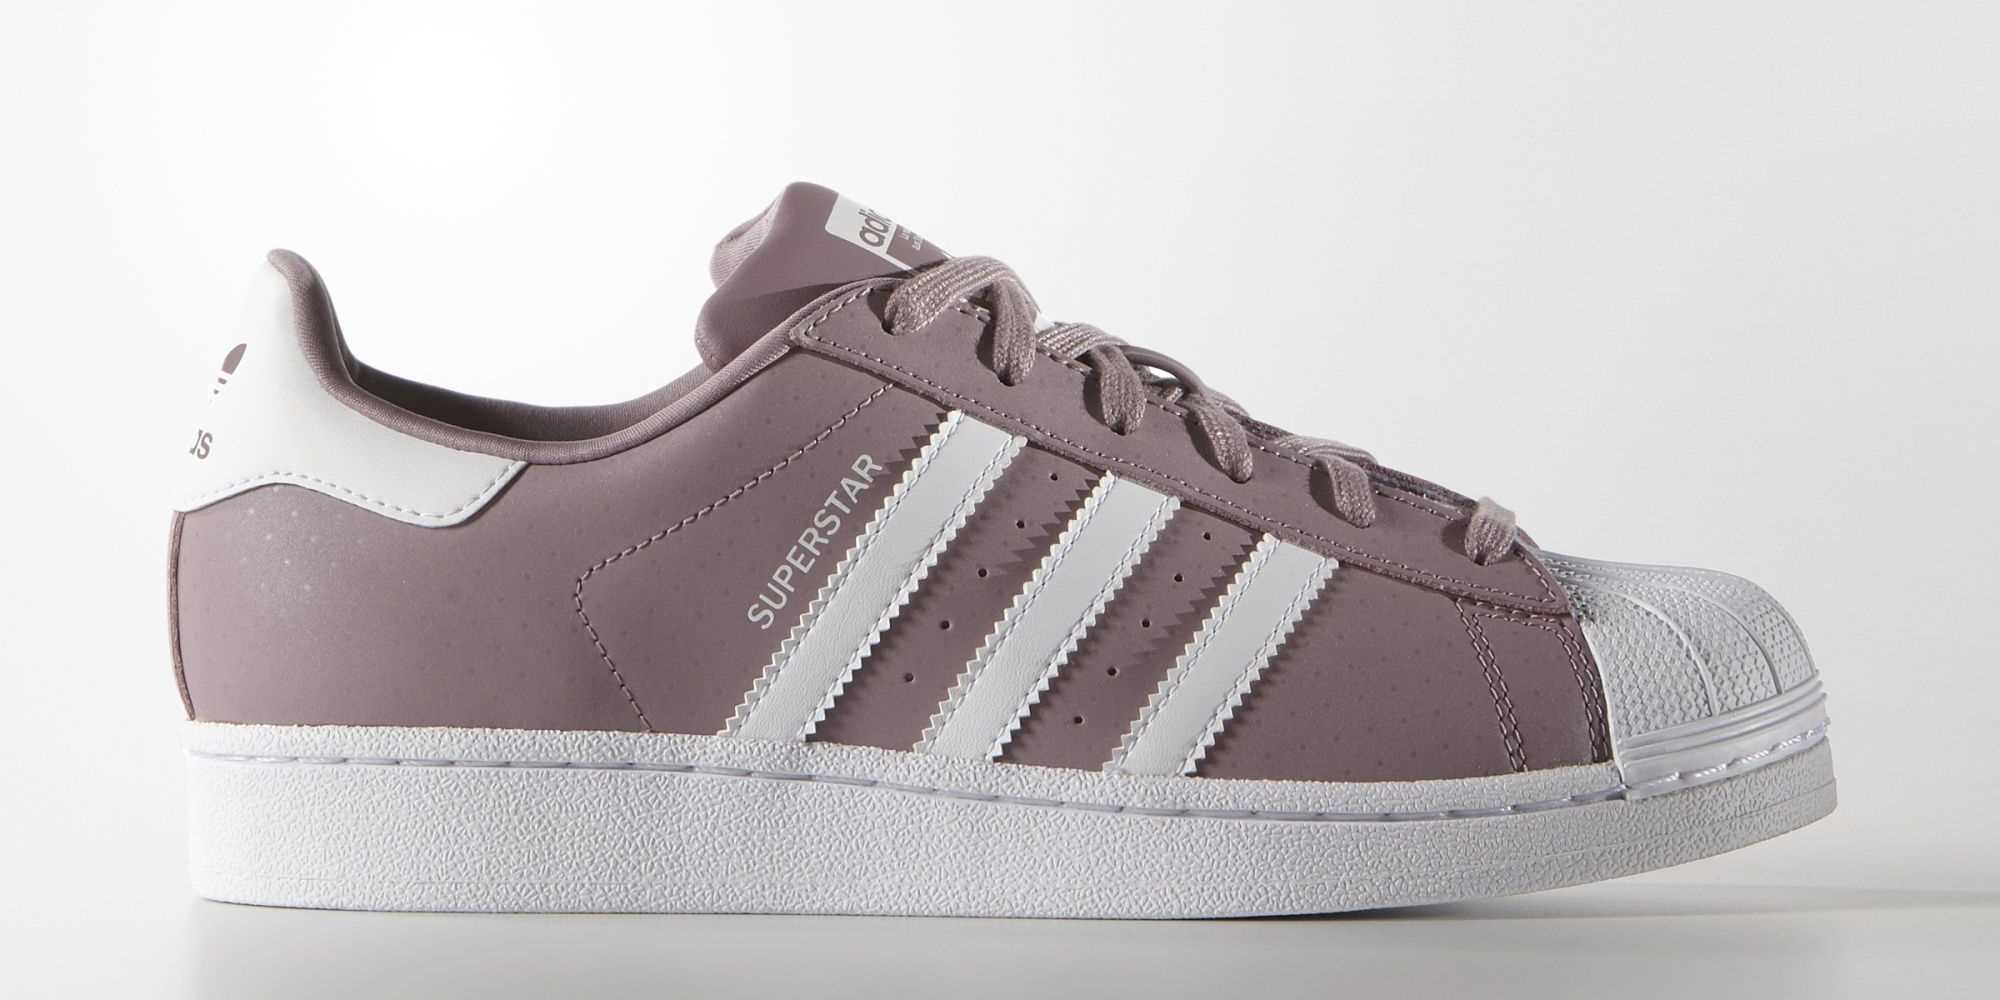 Farbe Mauve Taupe Adidas Superstar Taupe Cheap Online